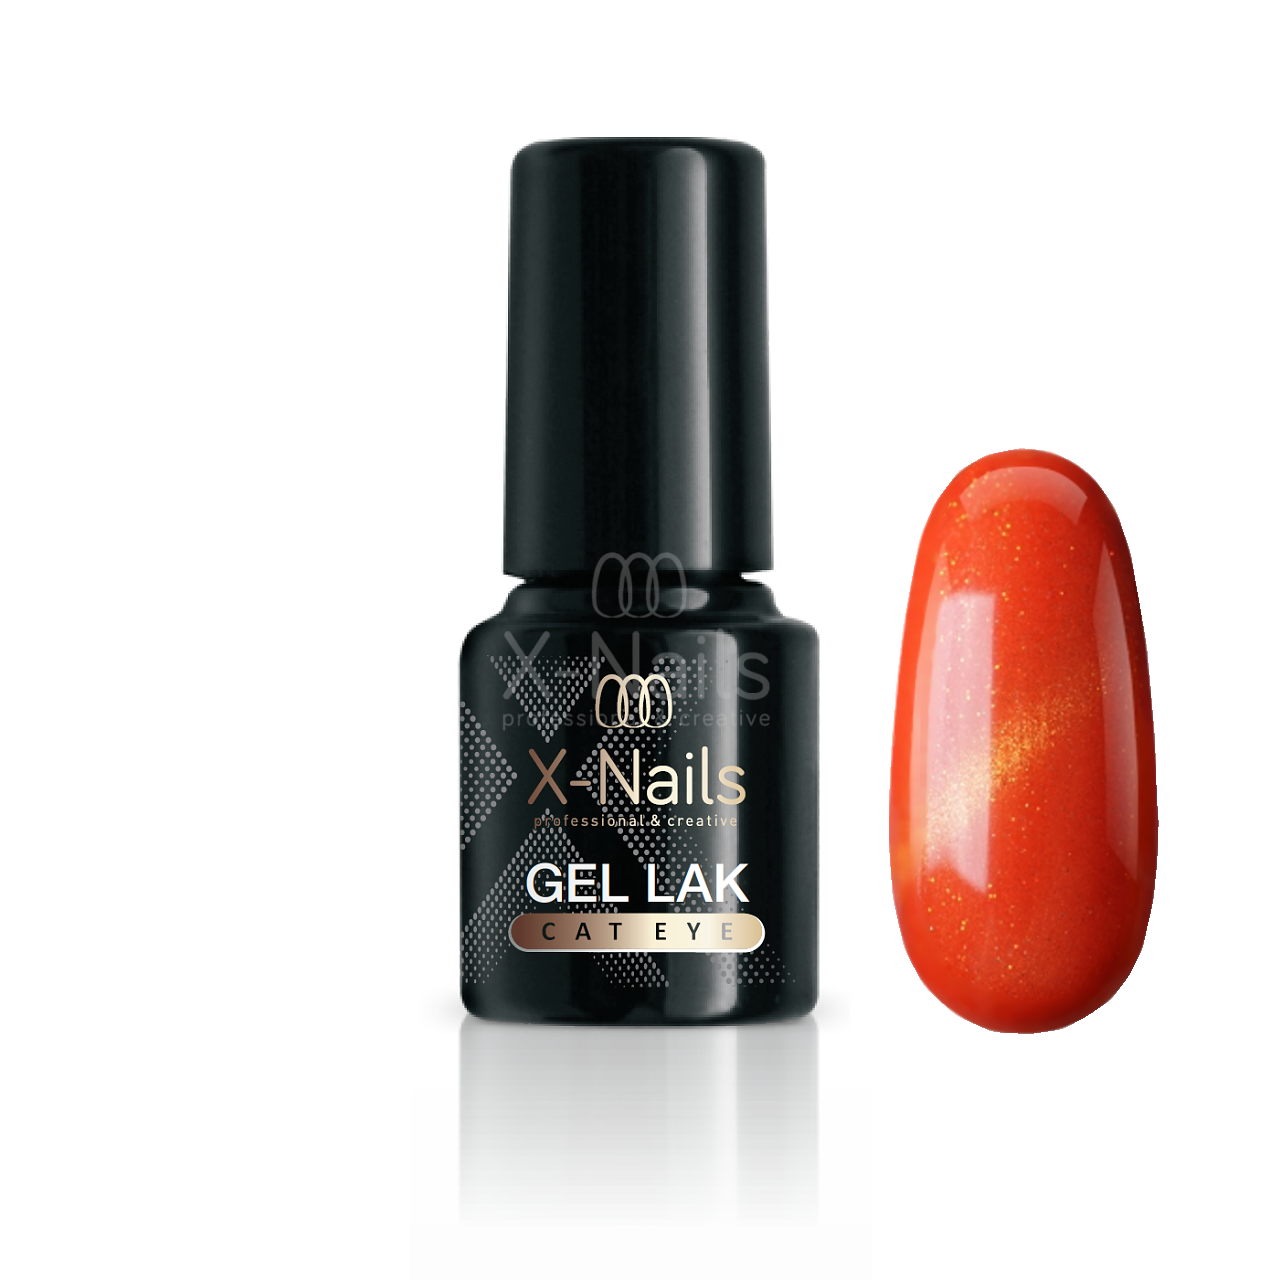 X-NAILS gel lak CAT EYE 6 ml - AURORA (tmavě oranžový)